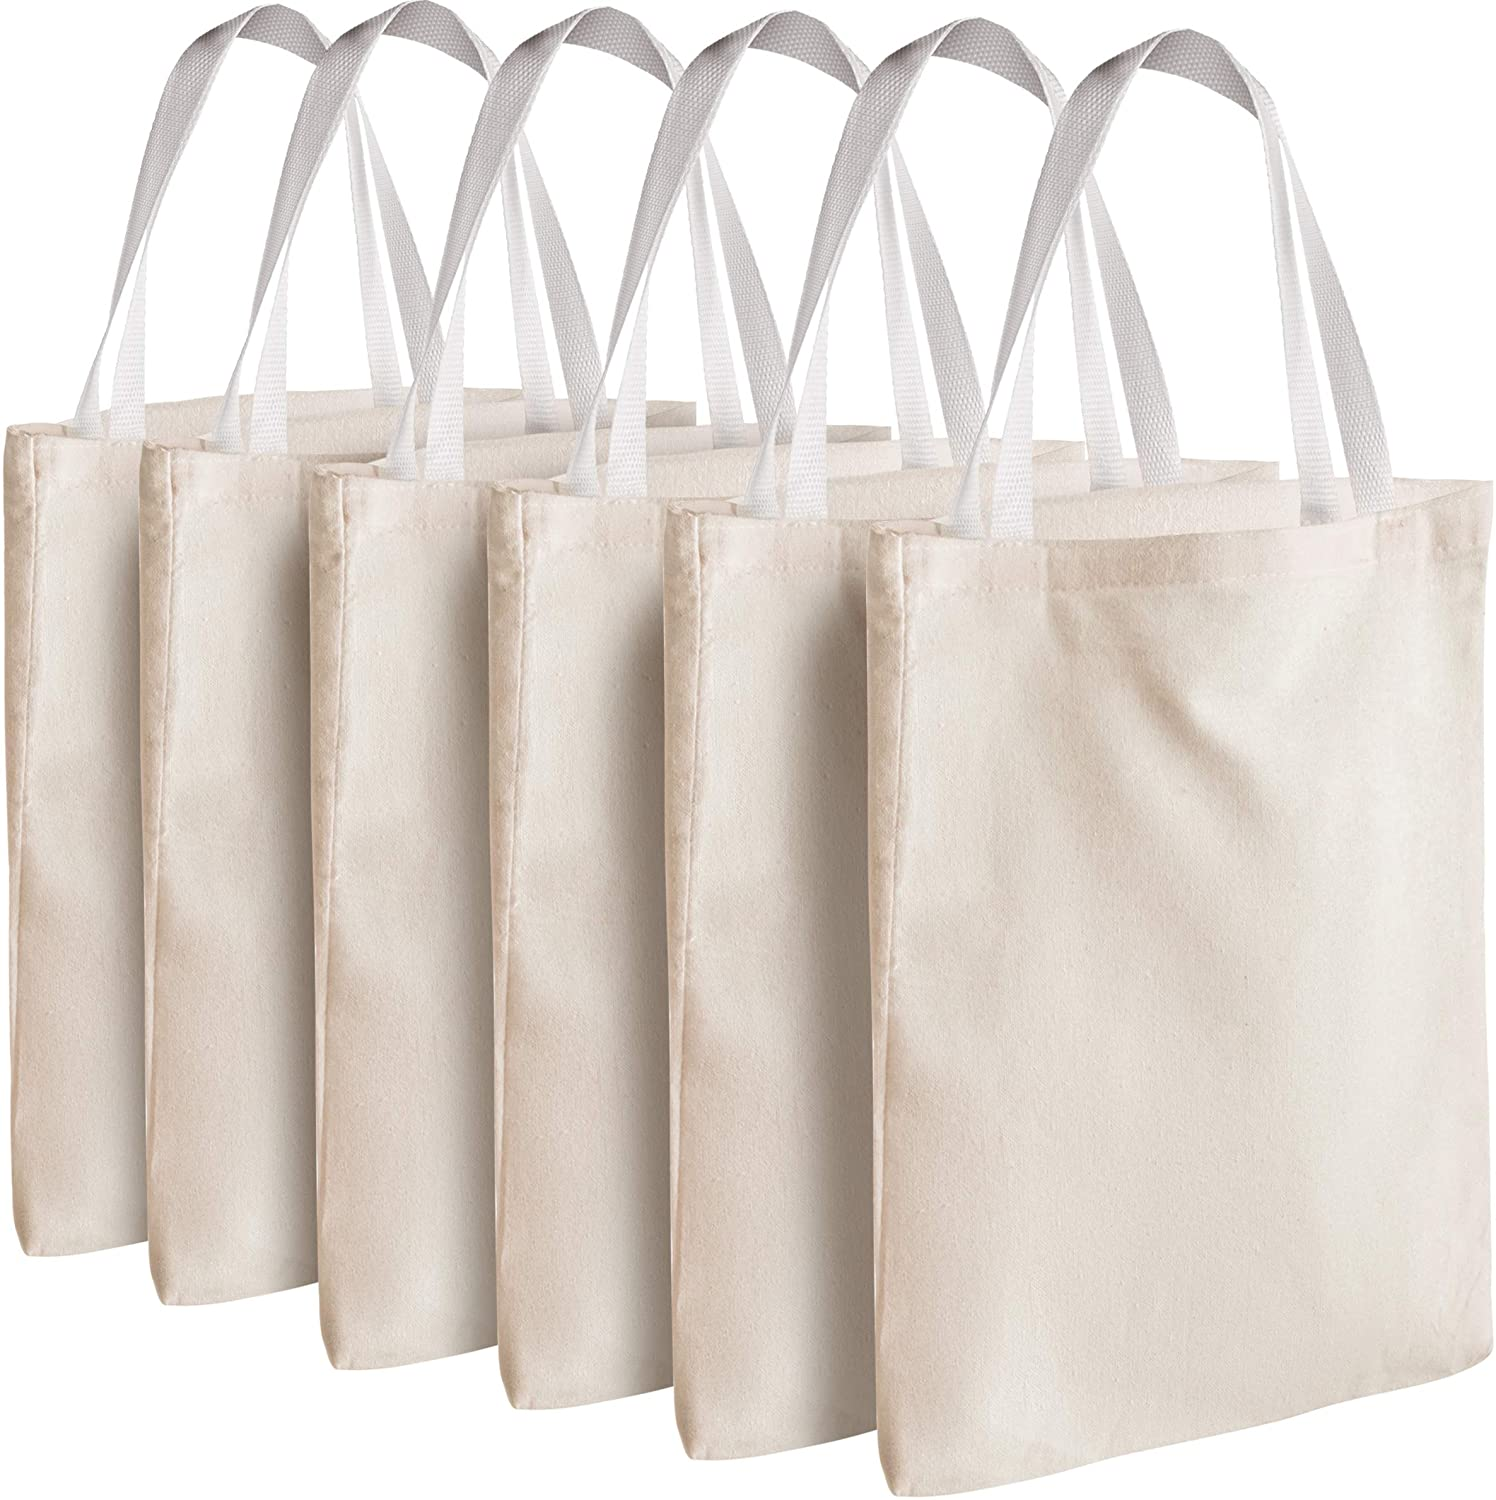 Get Your Cheap Tote Bags Under $1 Today!